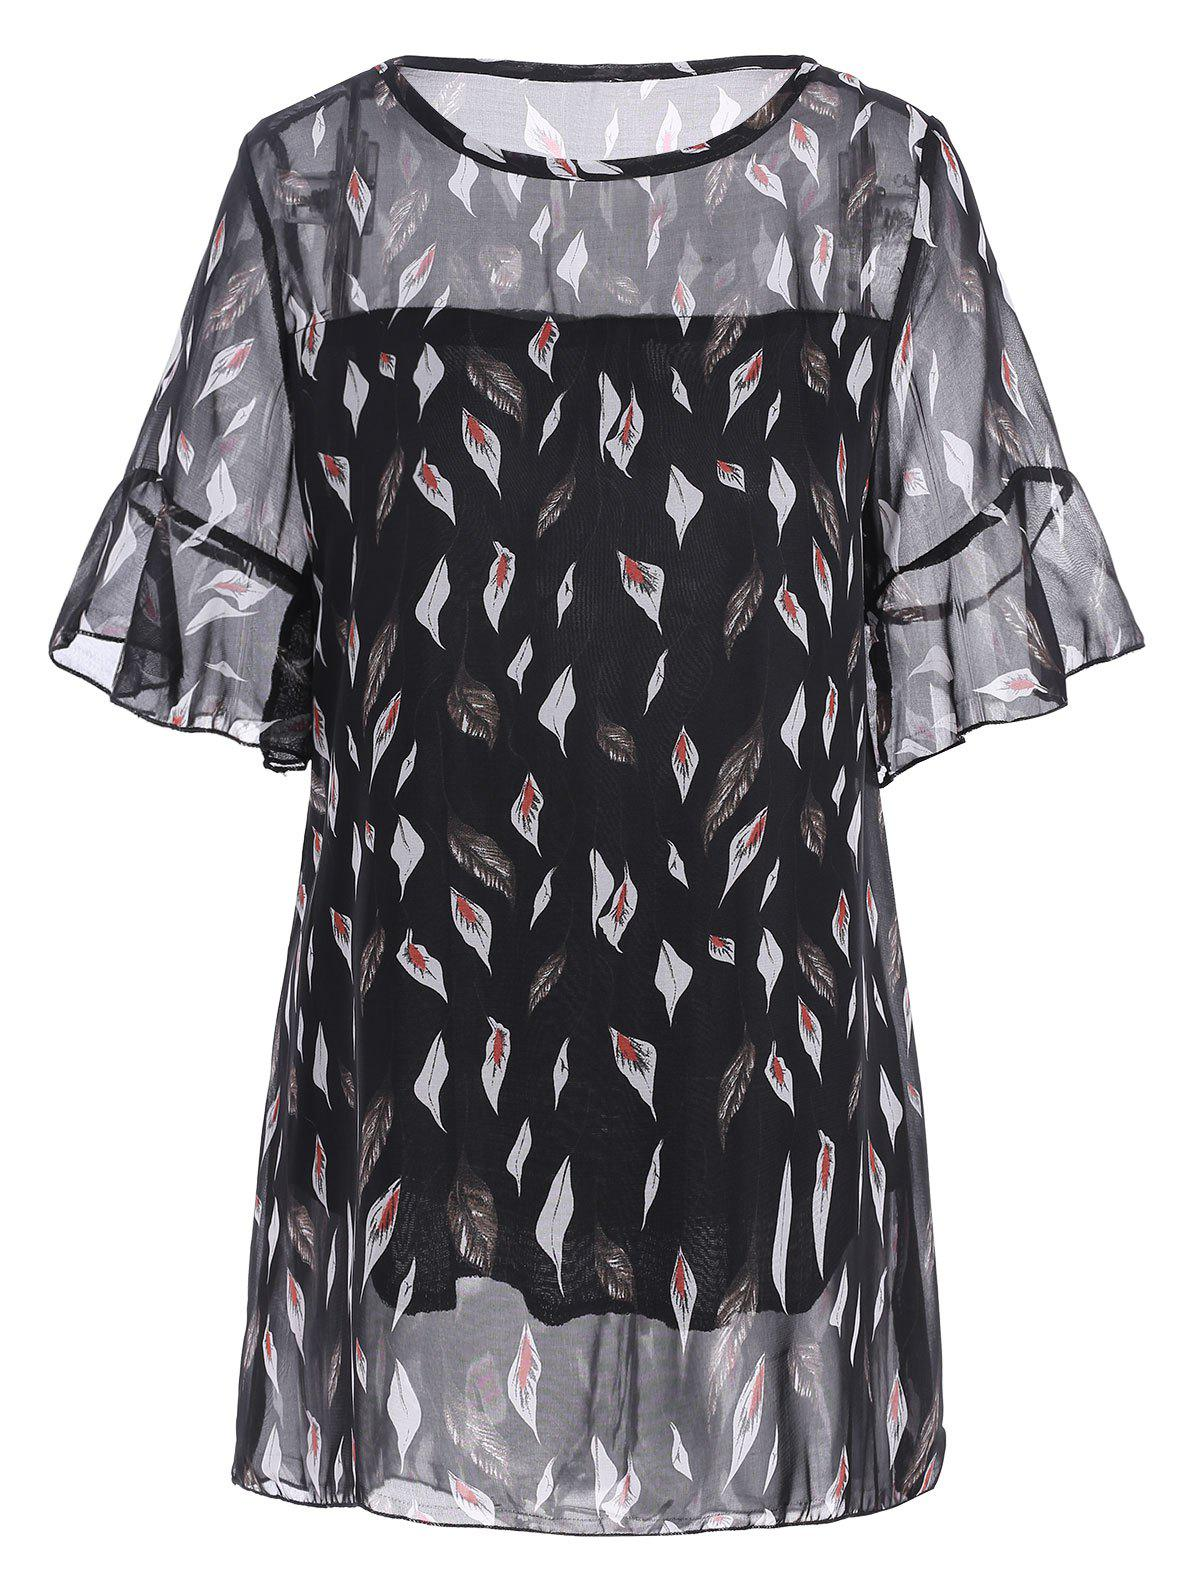 Plus Size Flowy Chiffon Printed TopWOMEN<br><br>Size: 5XL; Color: BLACK; Material: Cotton Blends,Polyester; Fabric Type: Chiffon; Shirt Length: Regular; Sleeve Length: Short; Collar: Scoop Neck; Style: Fashion; Season: Spring,Summer; Sleeve Type: Flare Sleeve; Embellishment: Ruffles; Pattern Type: Floral; Weight: 0.1800kg; Package Contents: 1 x Top;